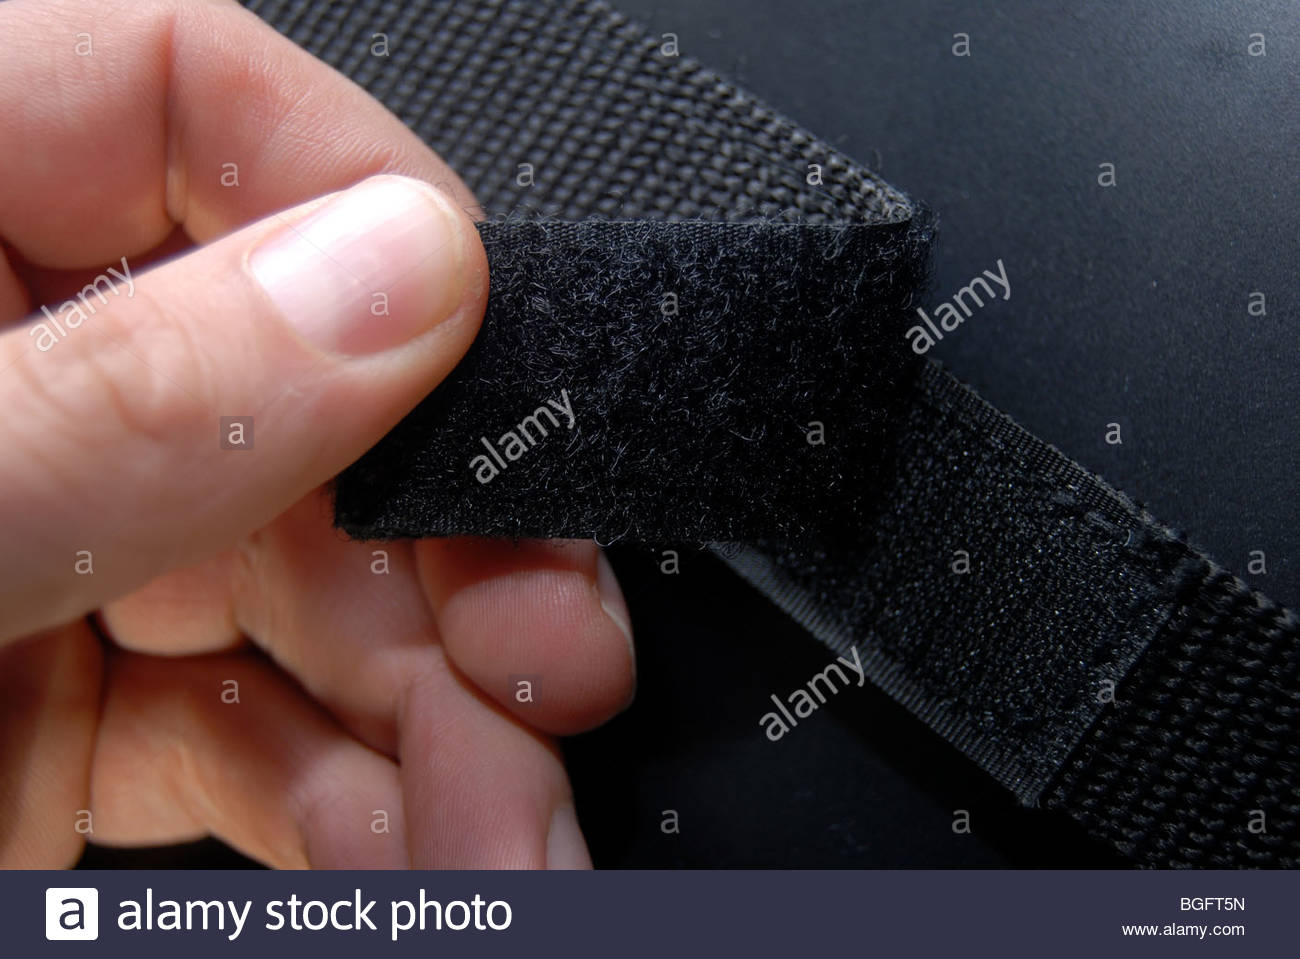 Velcro fastener in a laptop bag. - Stock Image